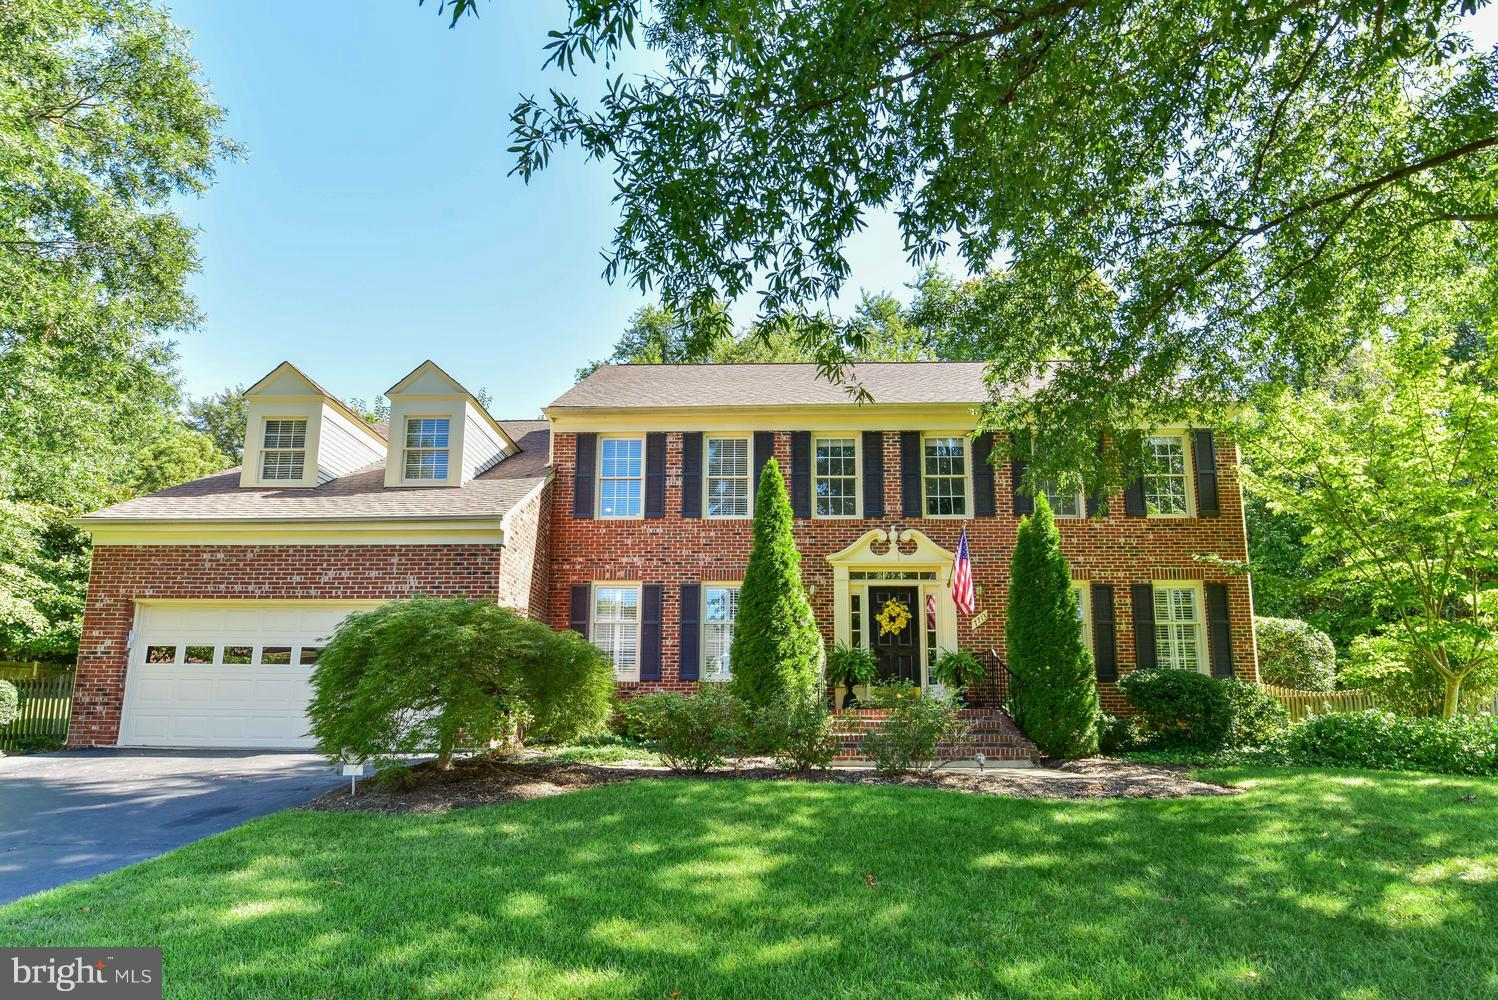 Elegant colonial in sought after Kirkside offers gracious, open floor plan for entertaining and comfortable daily living.  Freshly painted. AC and hot water heater replaced in 2017.  New carpet on upper level and main level bedroom(2018) and many more improvements. Mature landscaping, expansive trek deck, flagstone patio and sport court. Over 4100 SF  SEE TOUR for more pics and floor plans